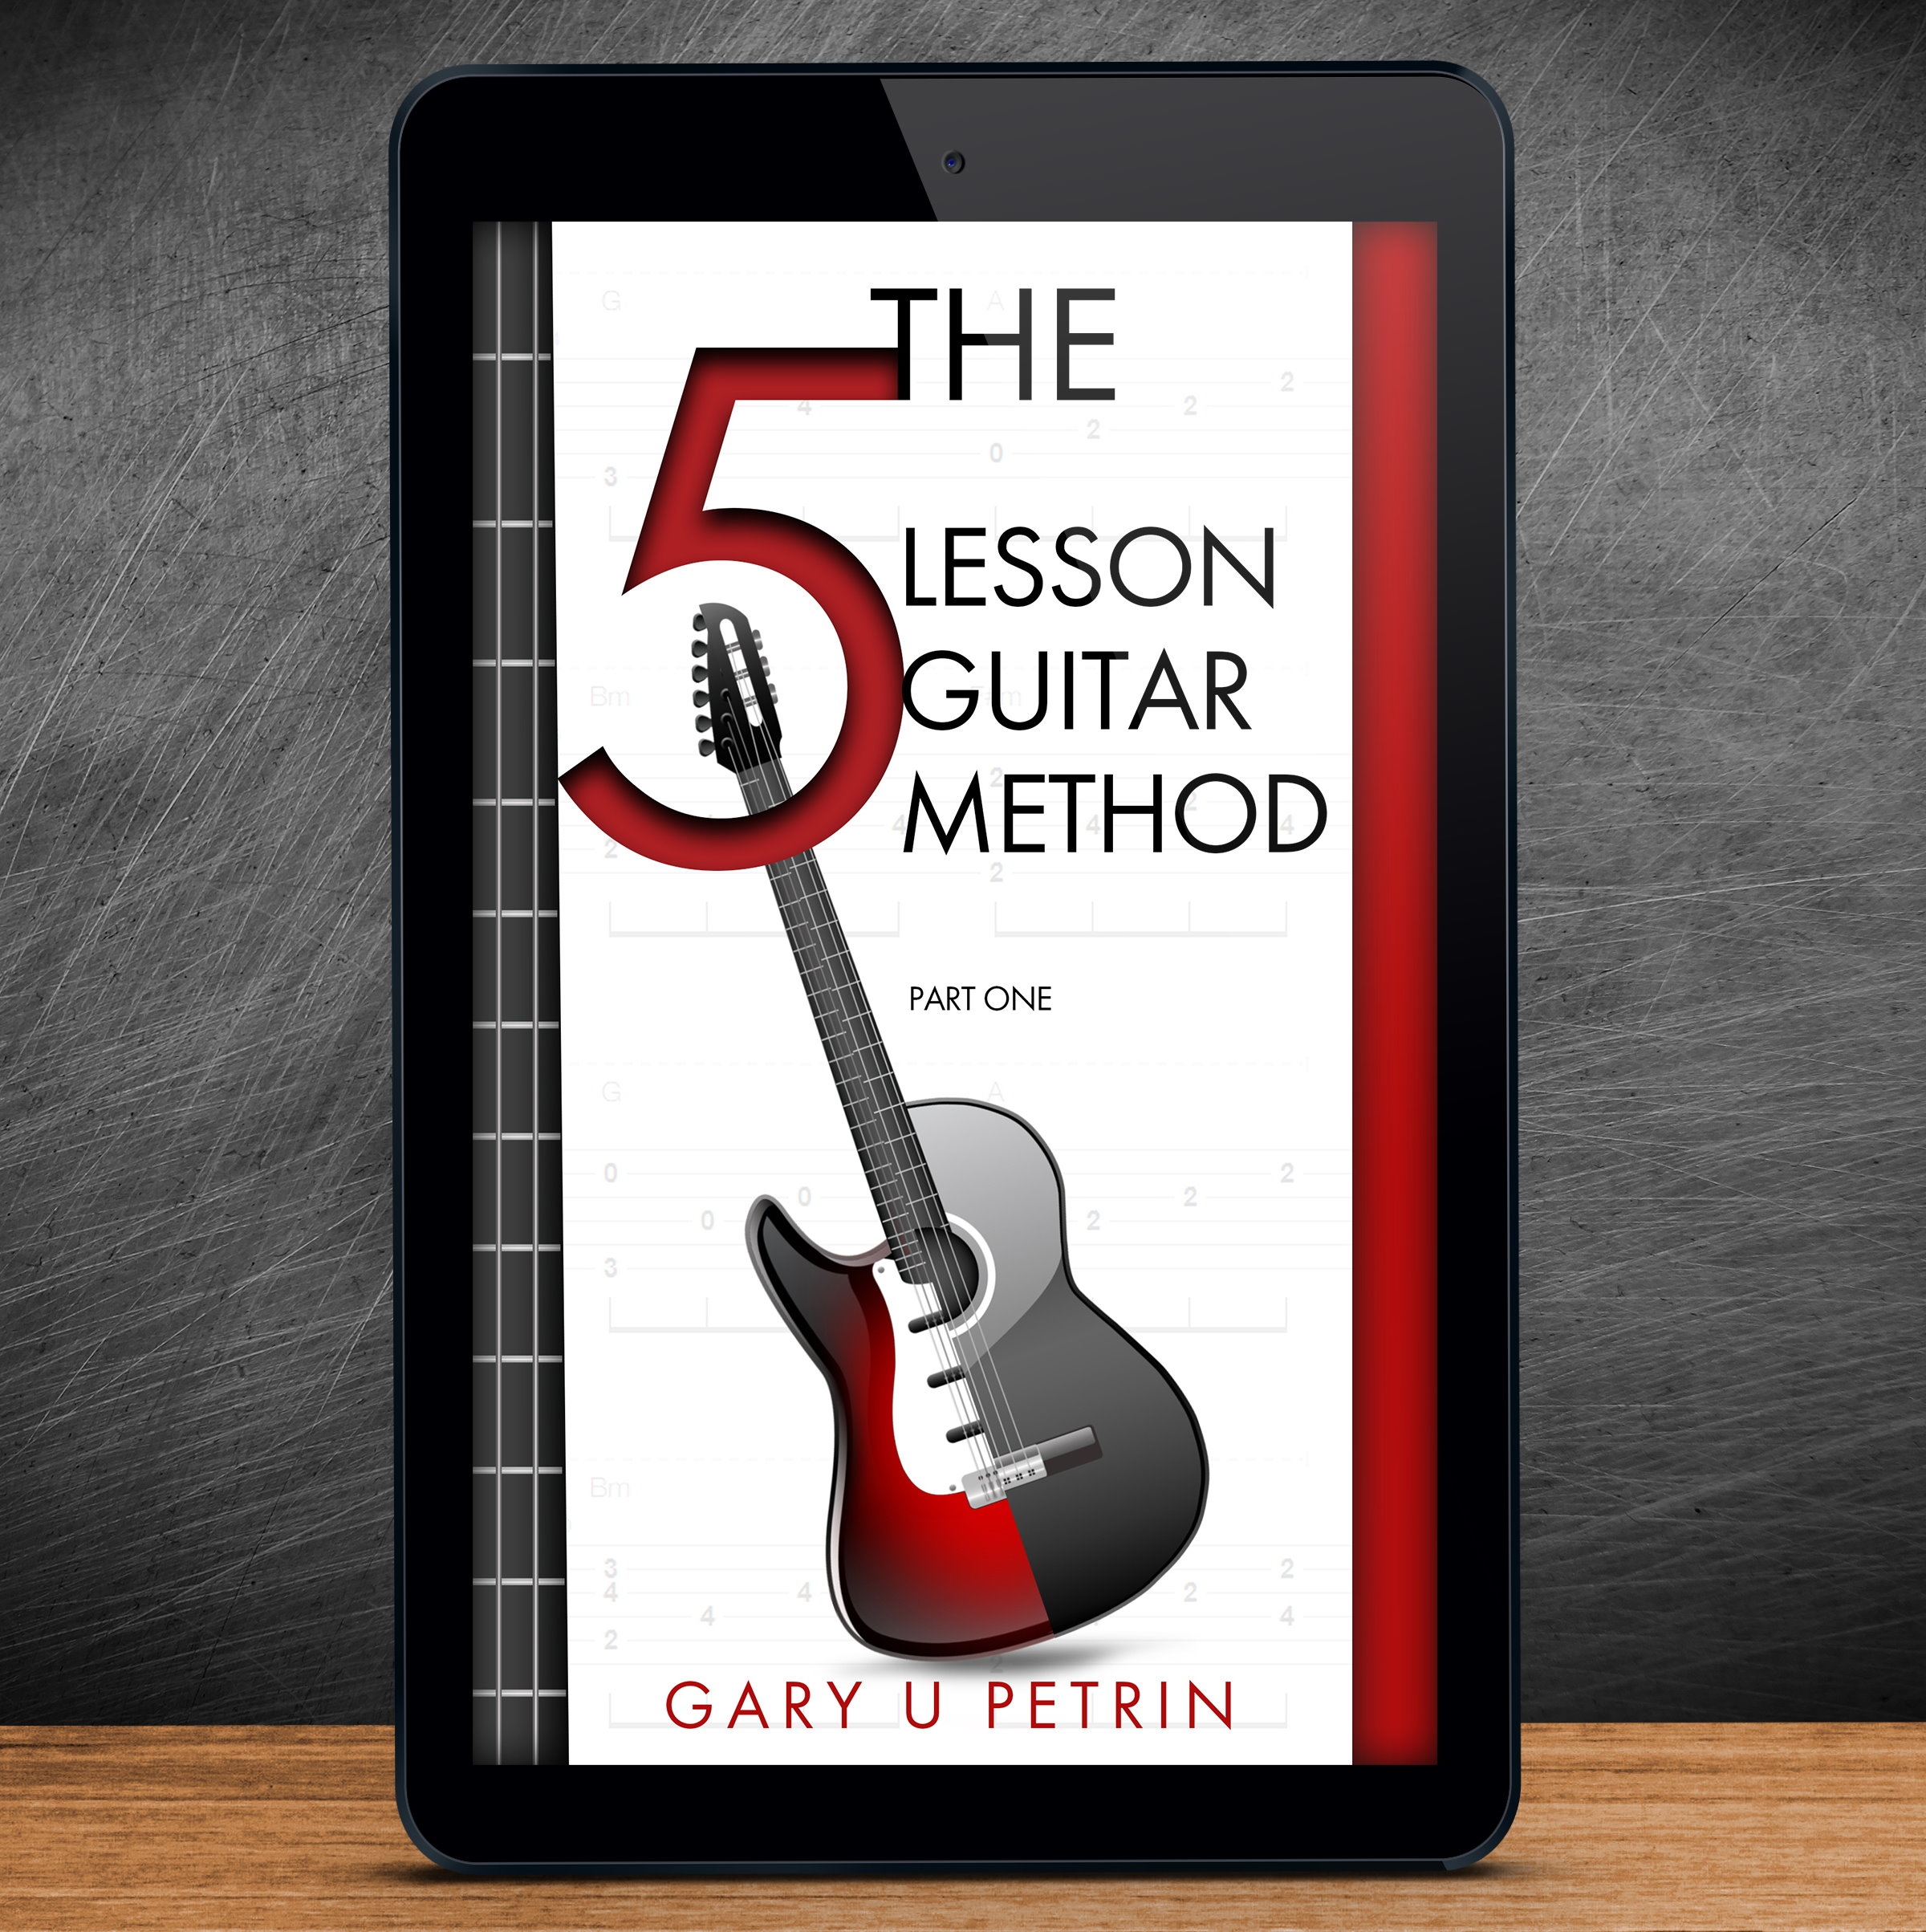 The 5 Lesson Guitar Method - Part One